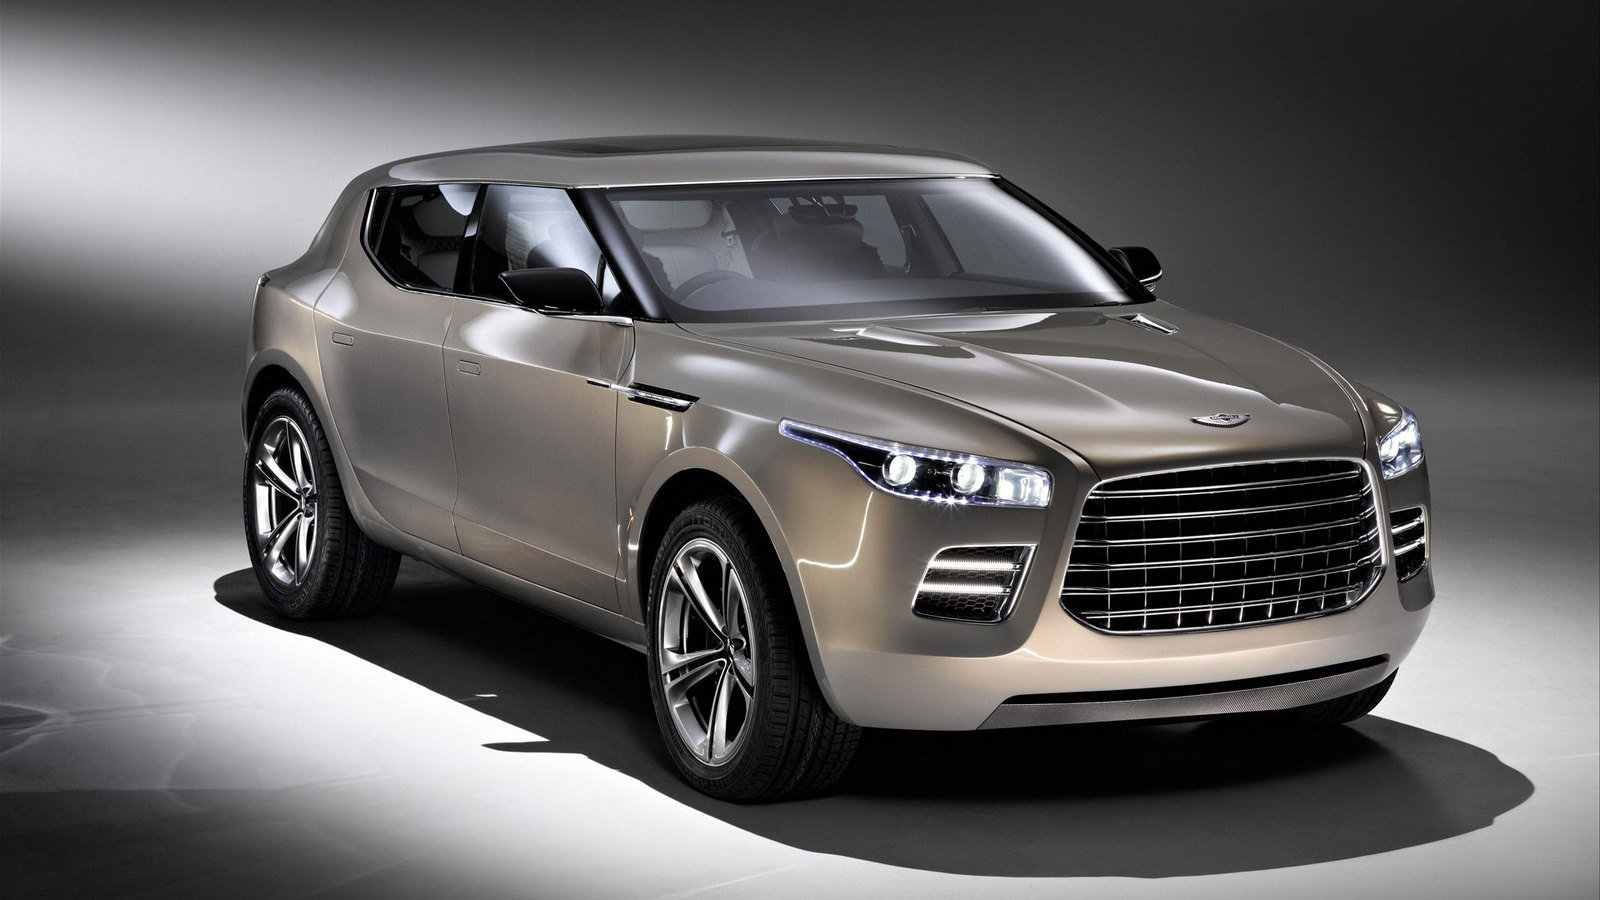 British Sports Cars >> Aston Martin Plans SUV And Hybrid Models By 2020 | Top Speed